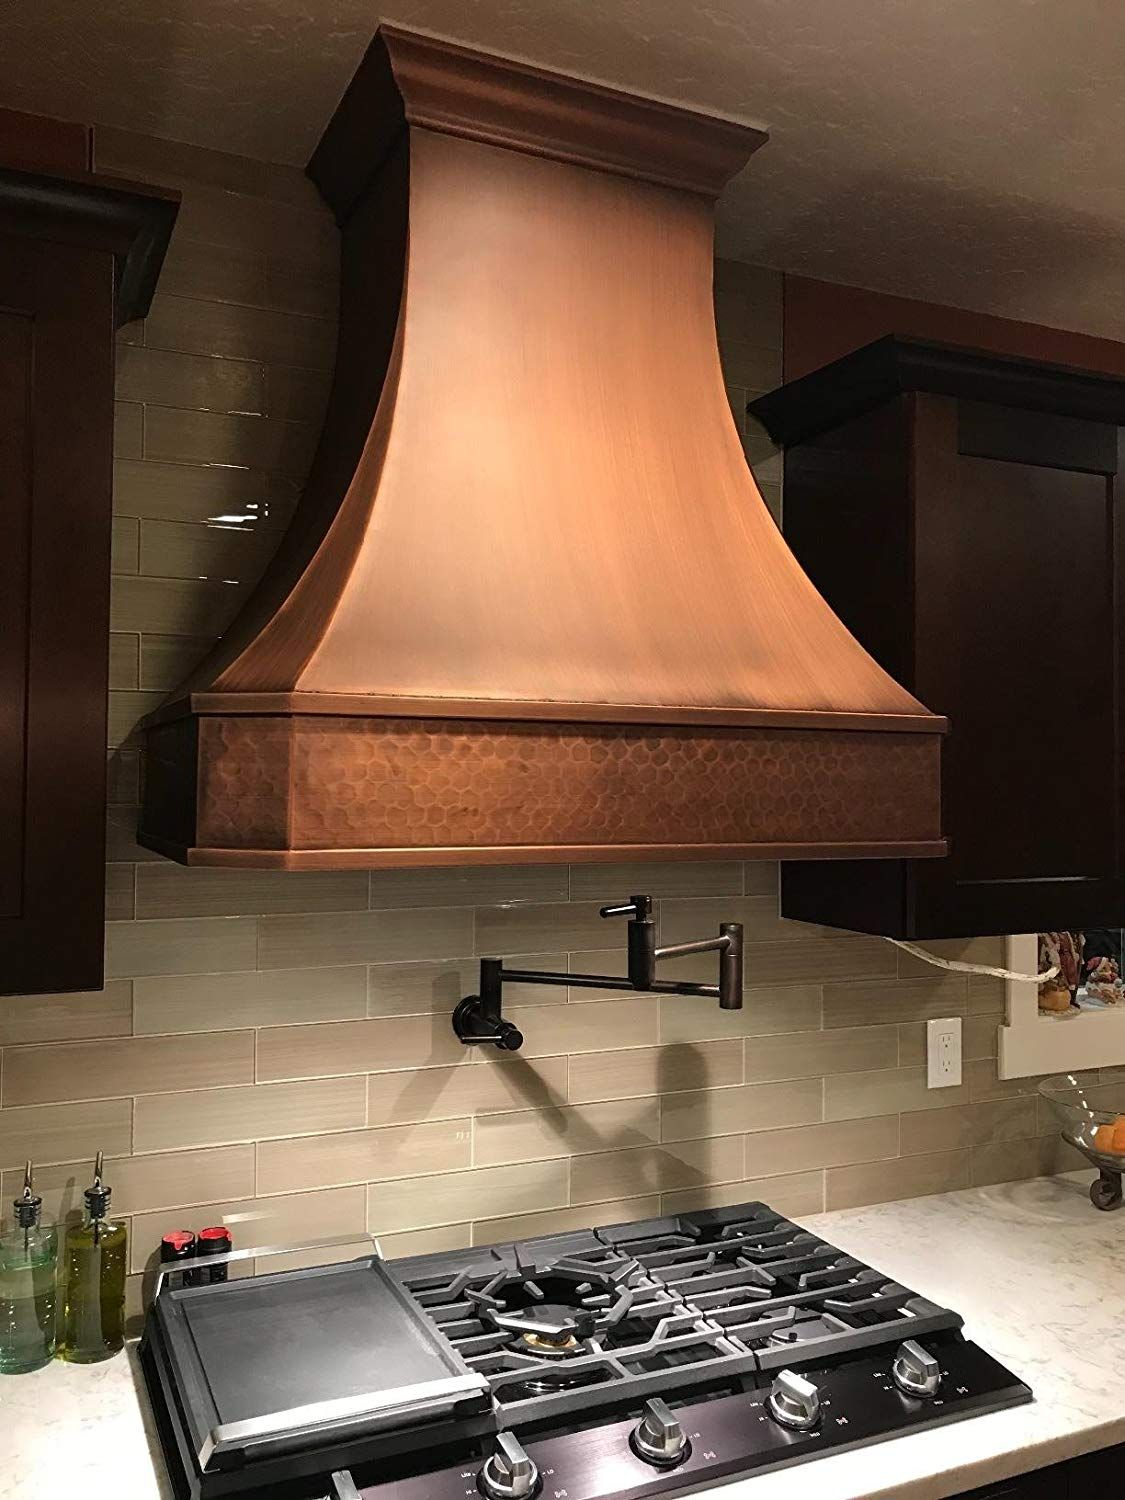 Pin By T Kane On Blue Kitchens Copper Kitchen Hood Copper Range Hood Copper Hood Vent